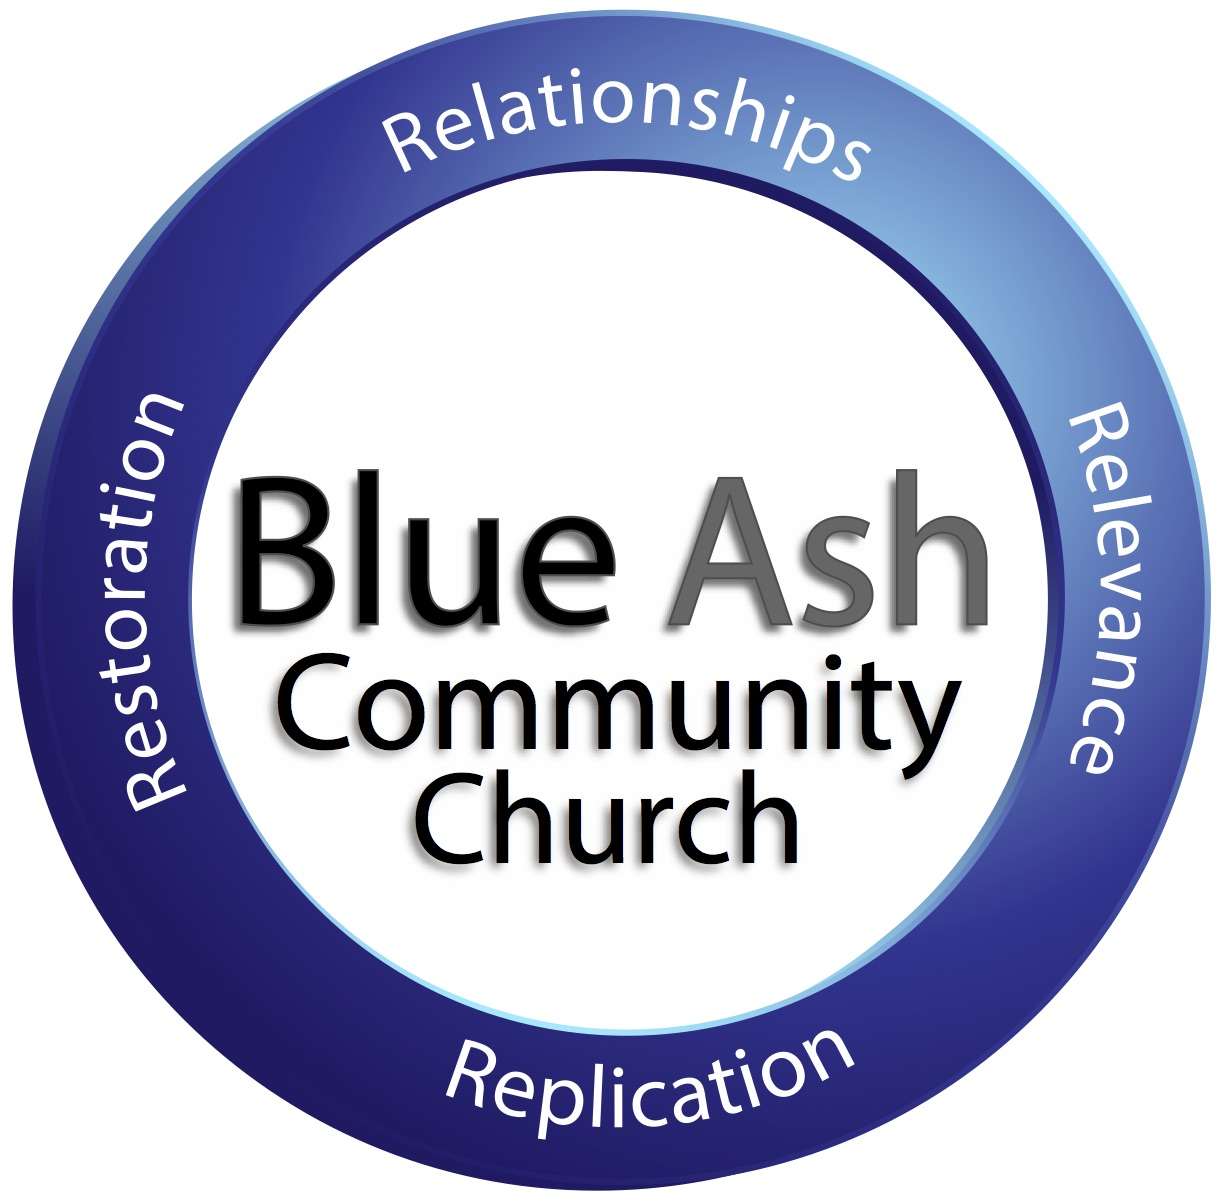 Blue Ash Community Church